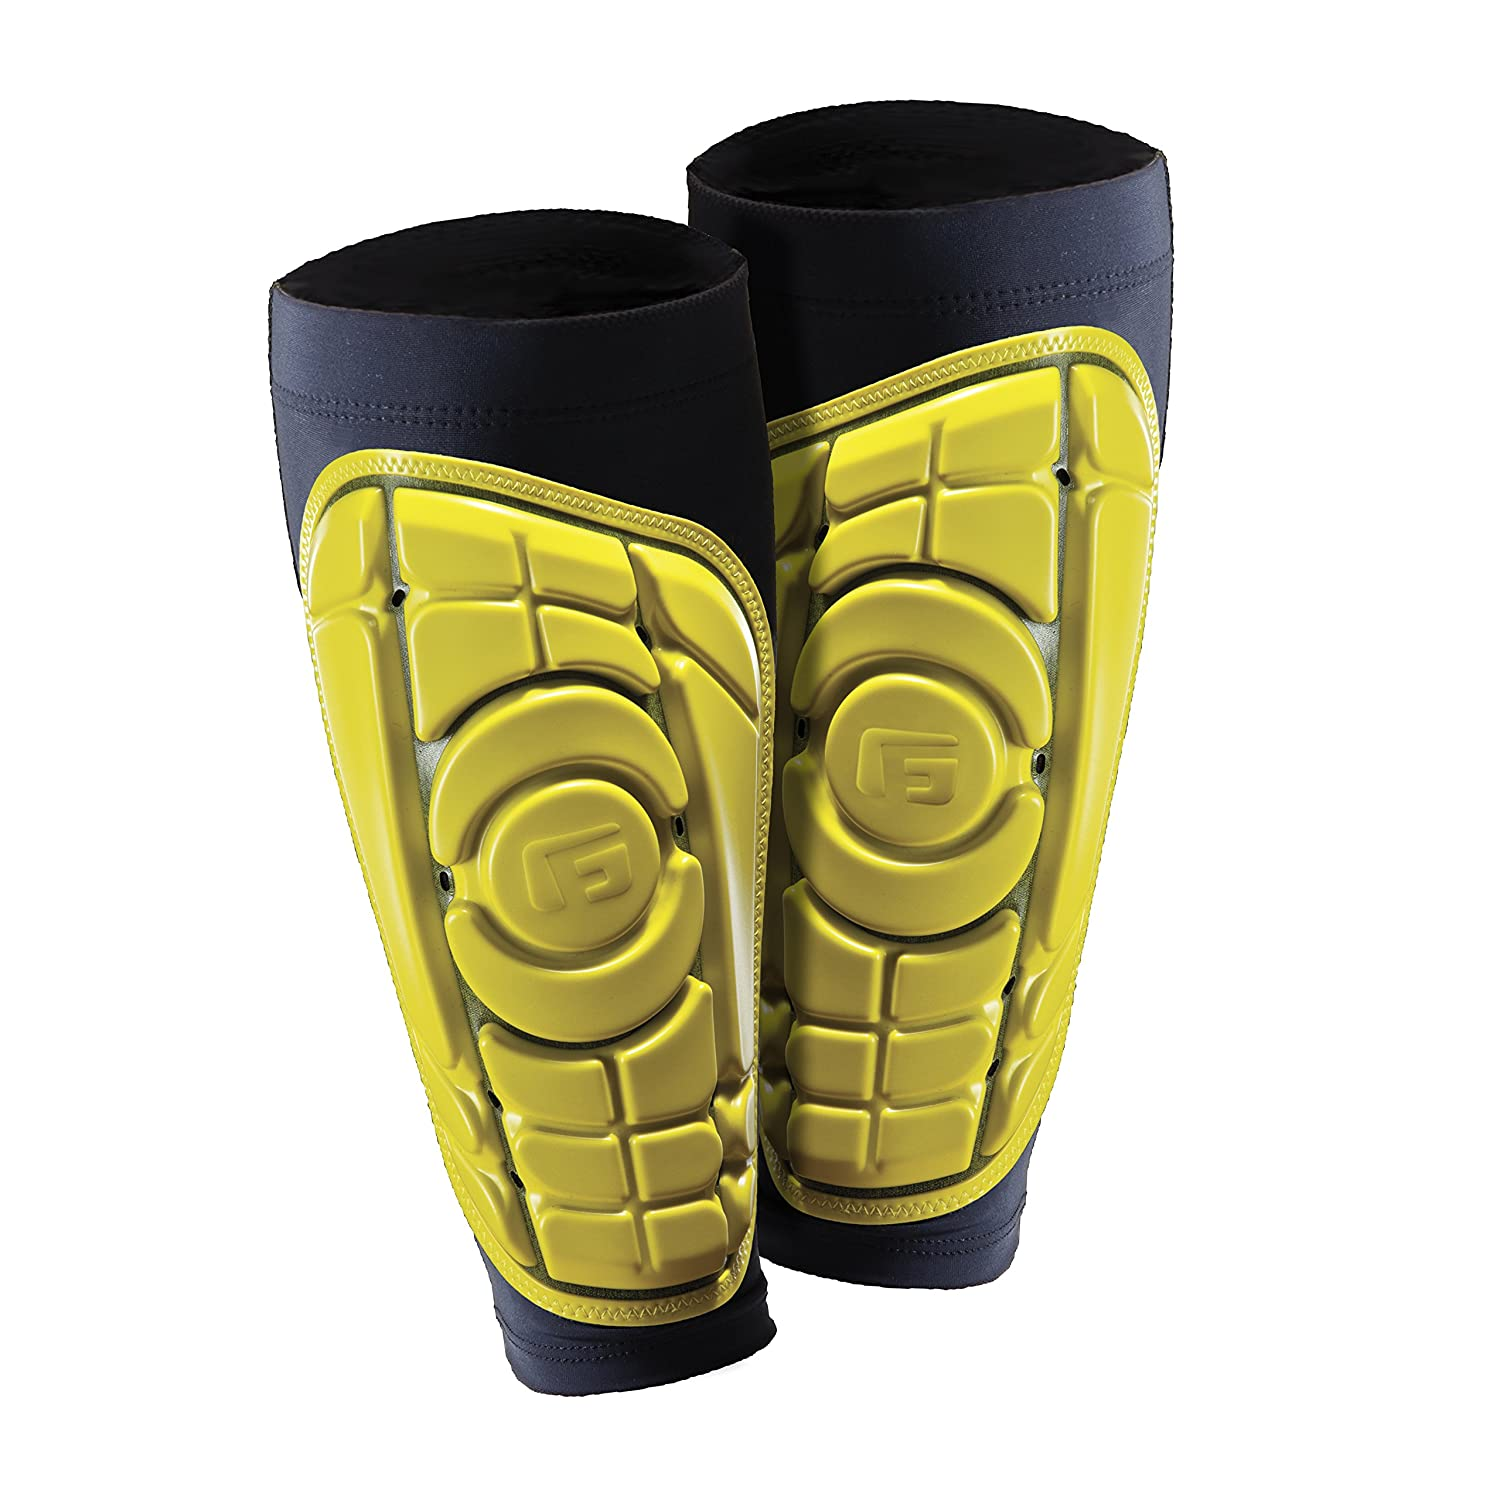 G Form Pro S Shin Guards by G Form